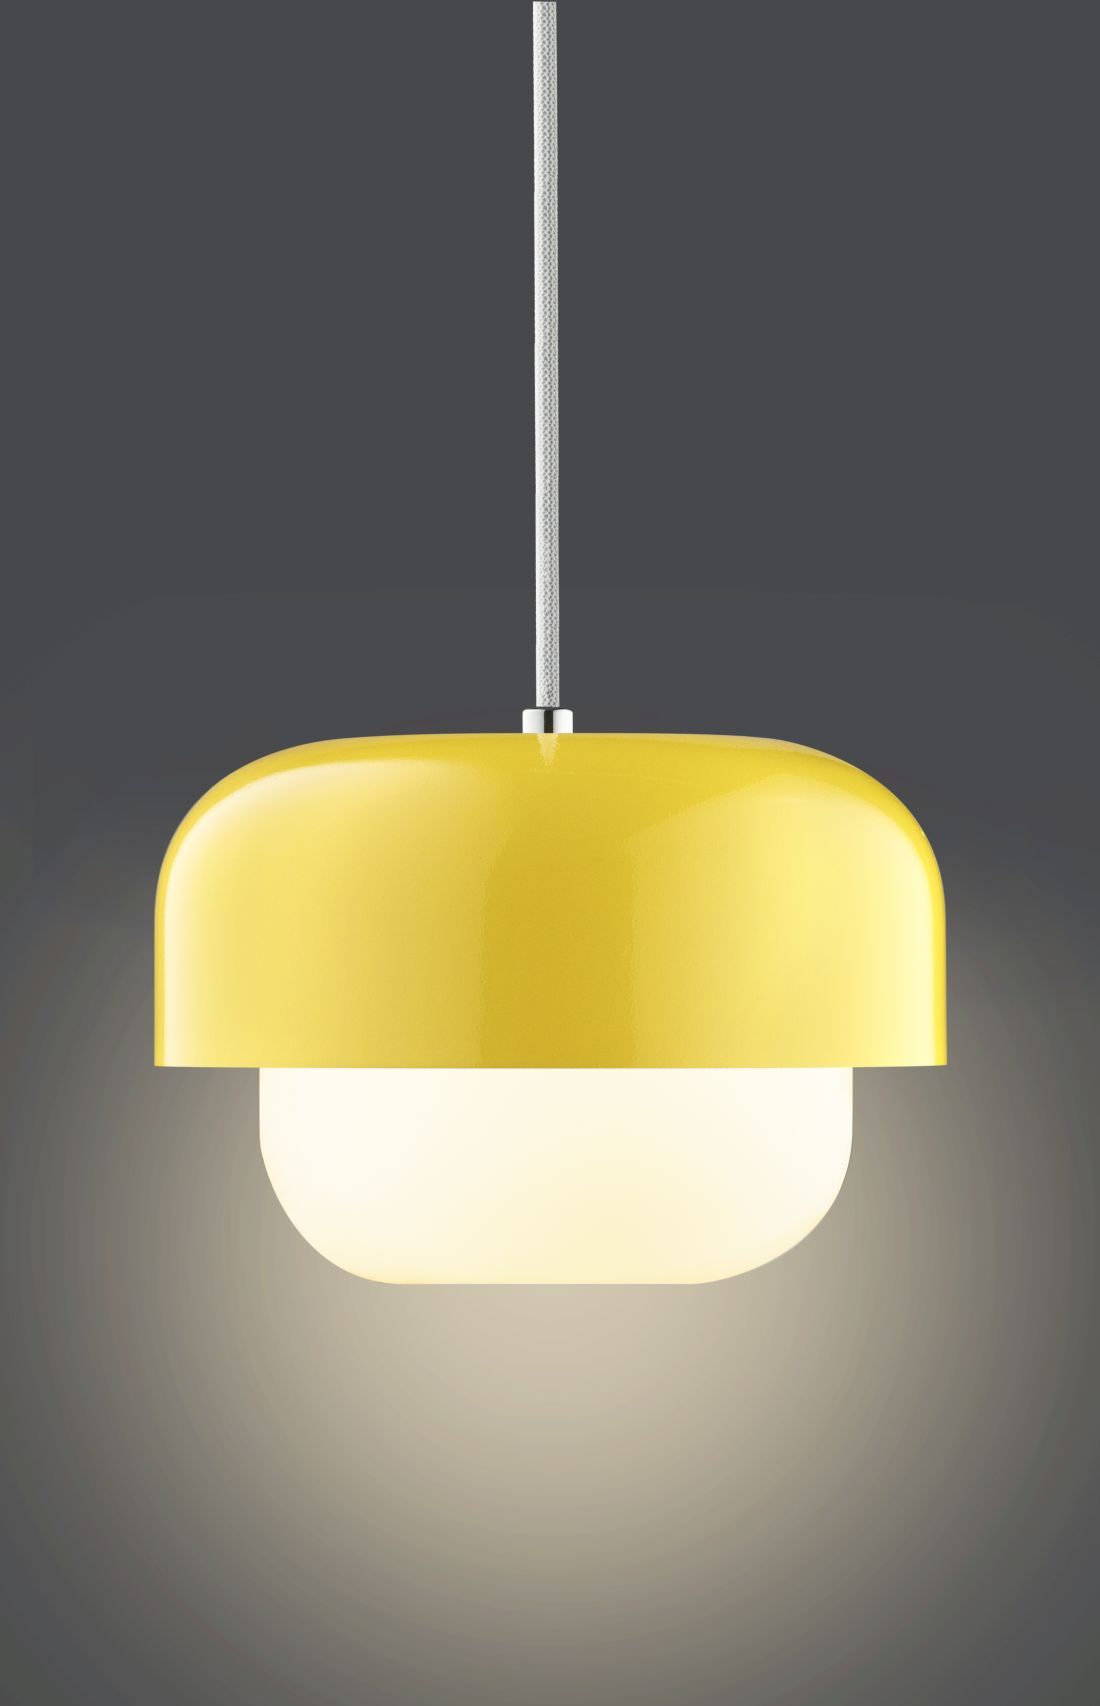 10lime-lace_haipot-pendant-light-by-dyberg-larsen-yellow.jpg